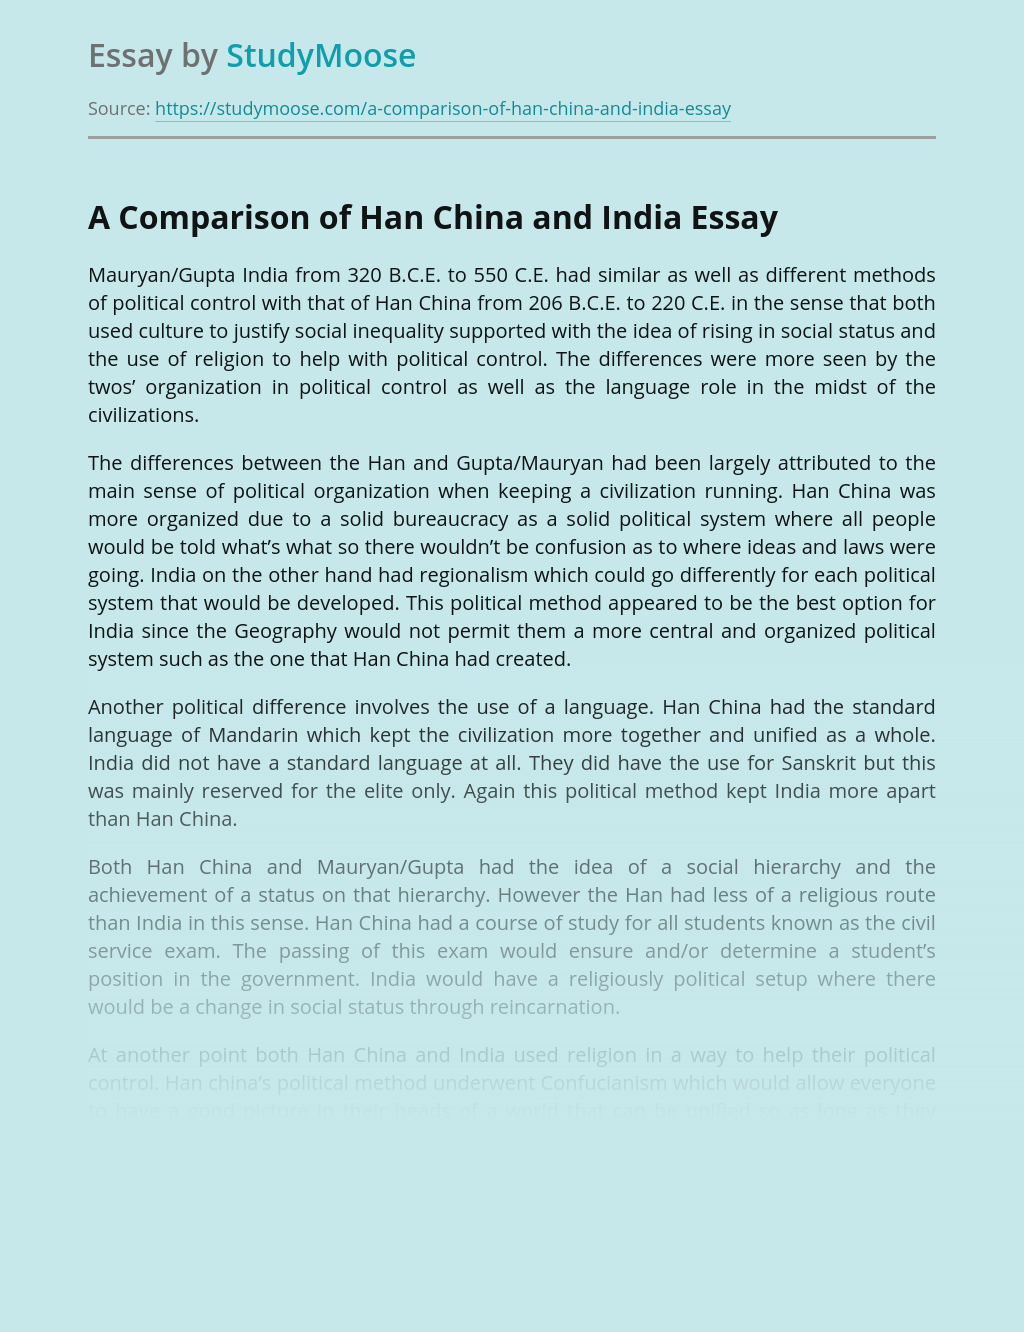 A Comparison of Han China and India